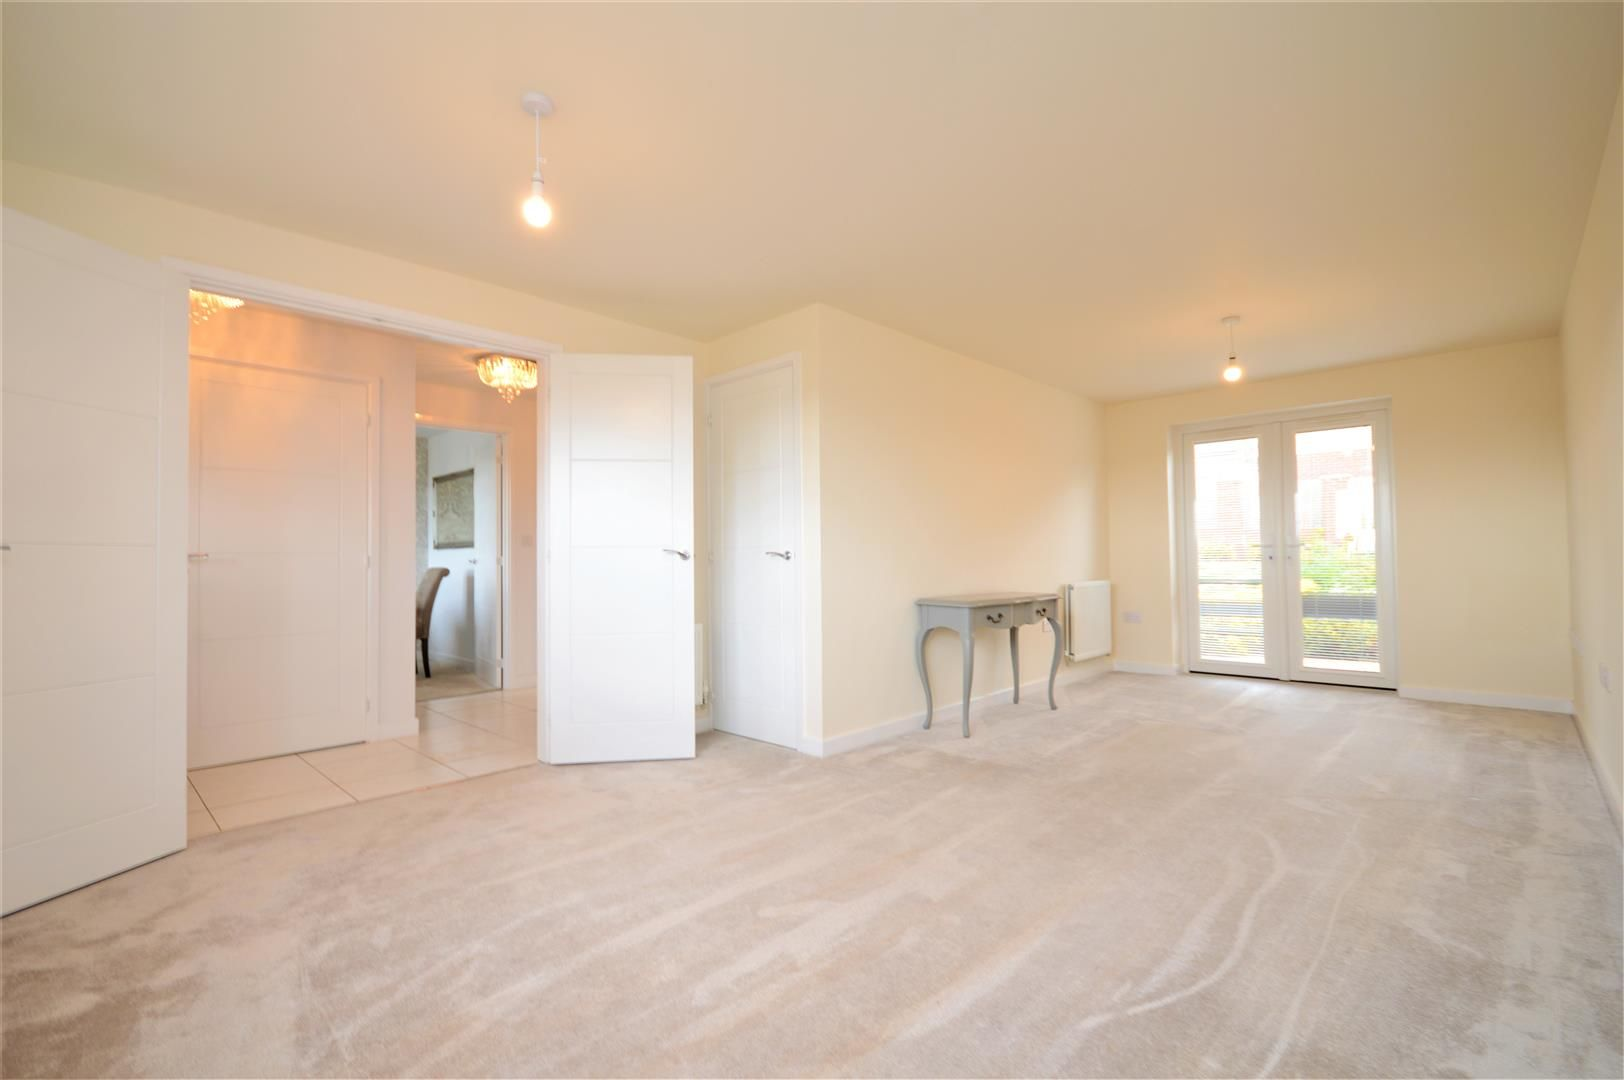 4 bed detached for sale in Bartestree 8